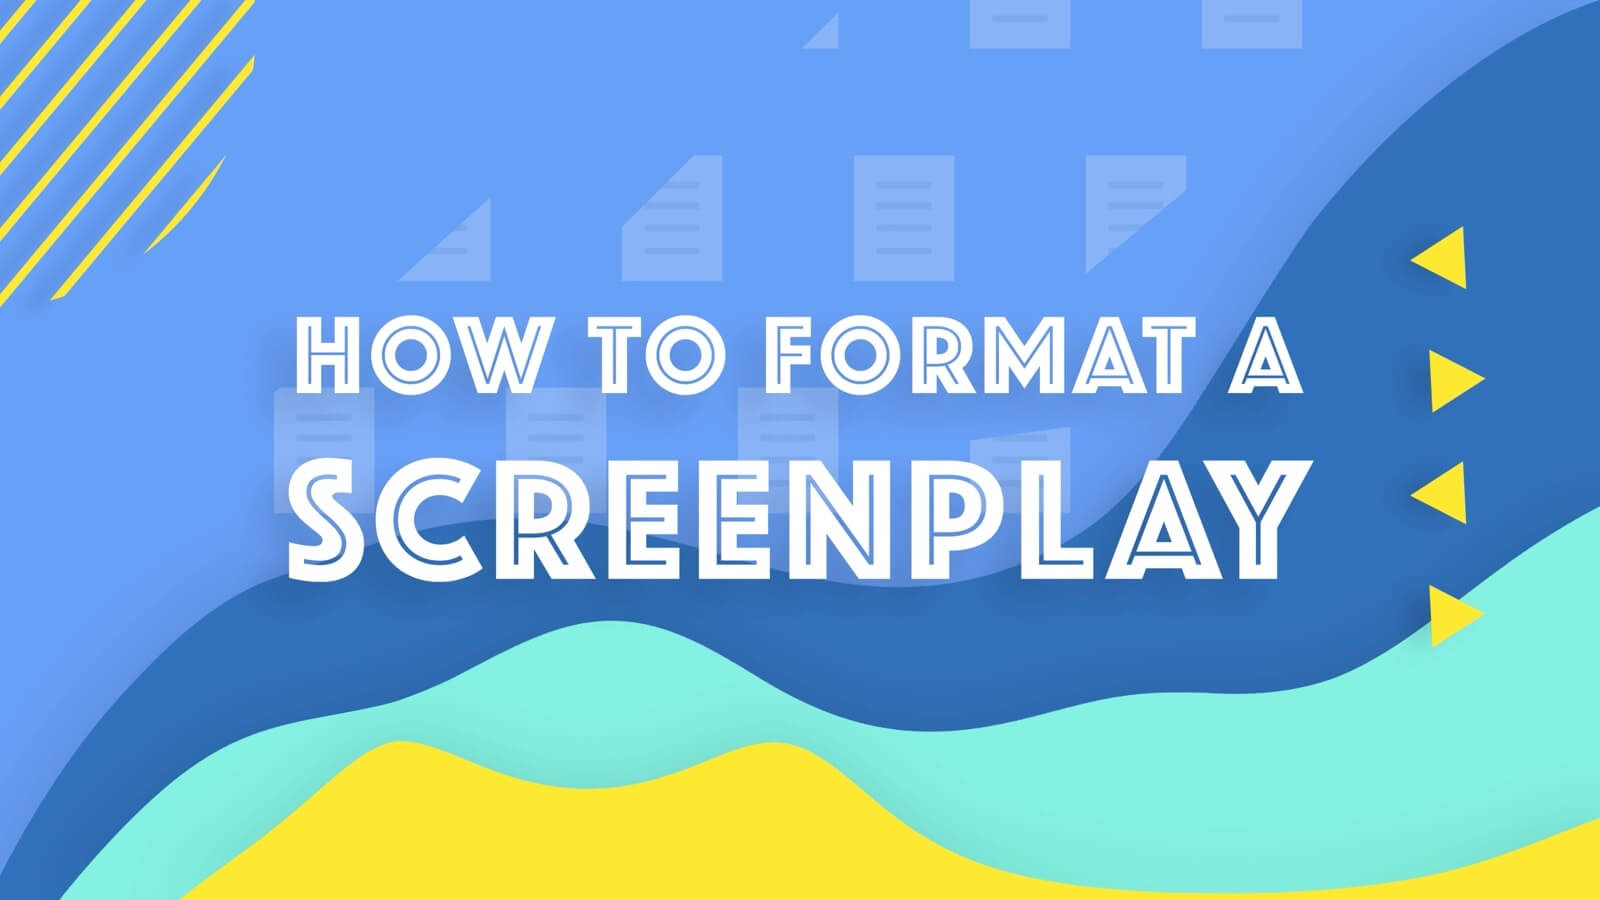 Screenplay format can seem daunting, but once you understand that it's all there for a reason, you'll have it mastered in no time.